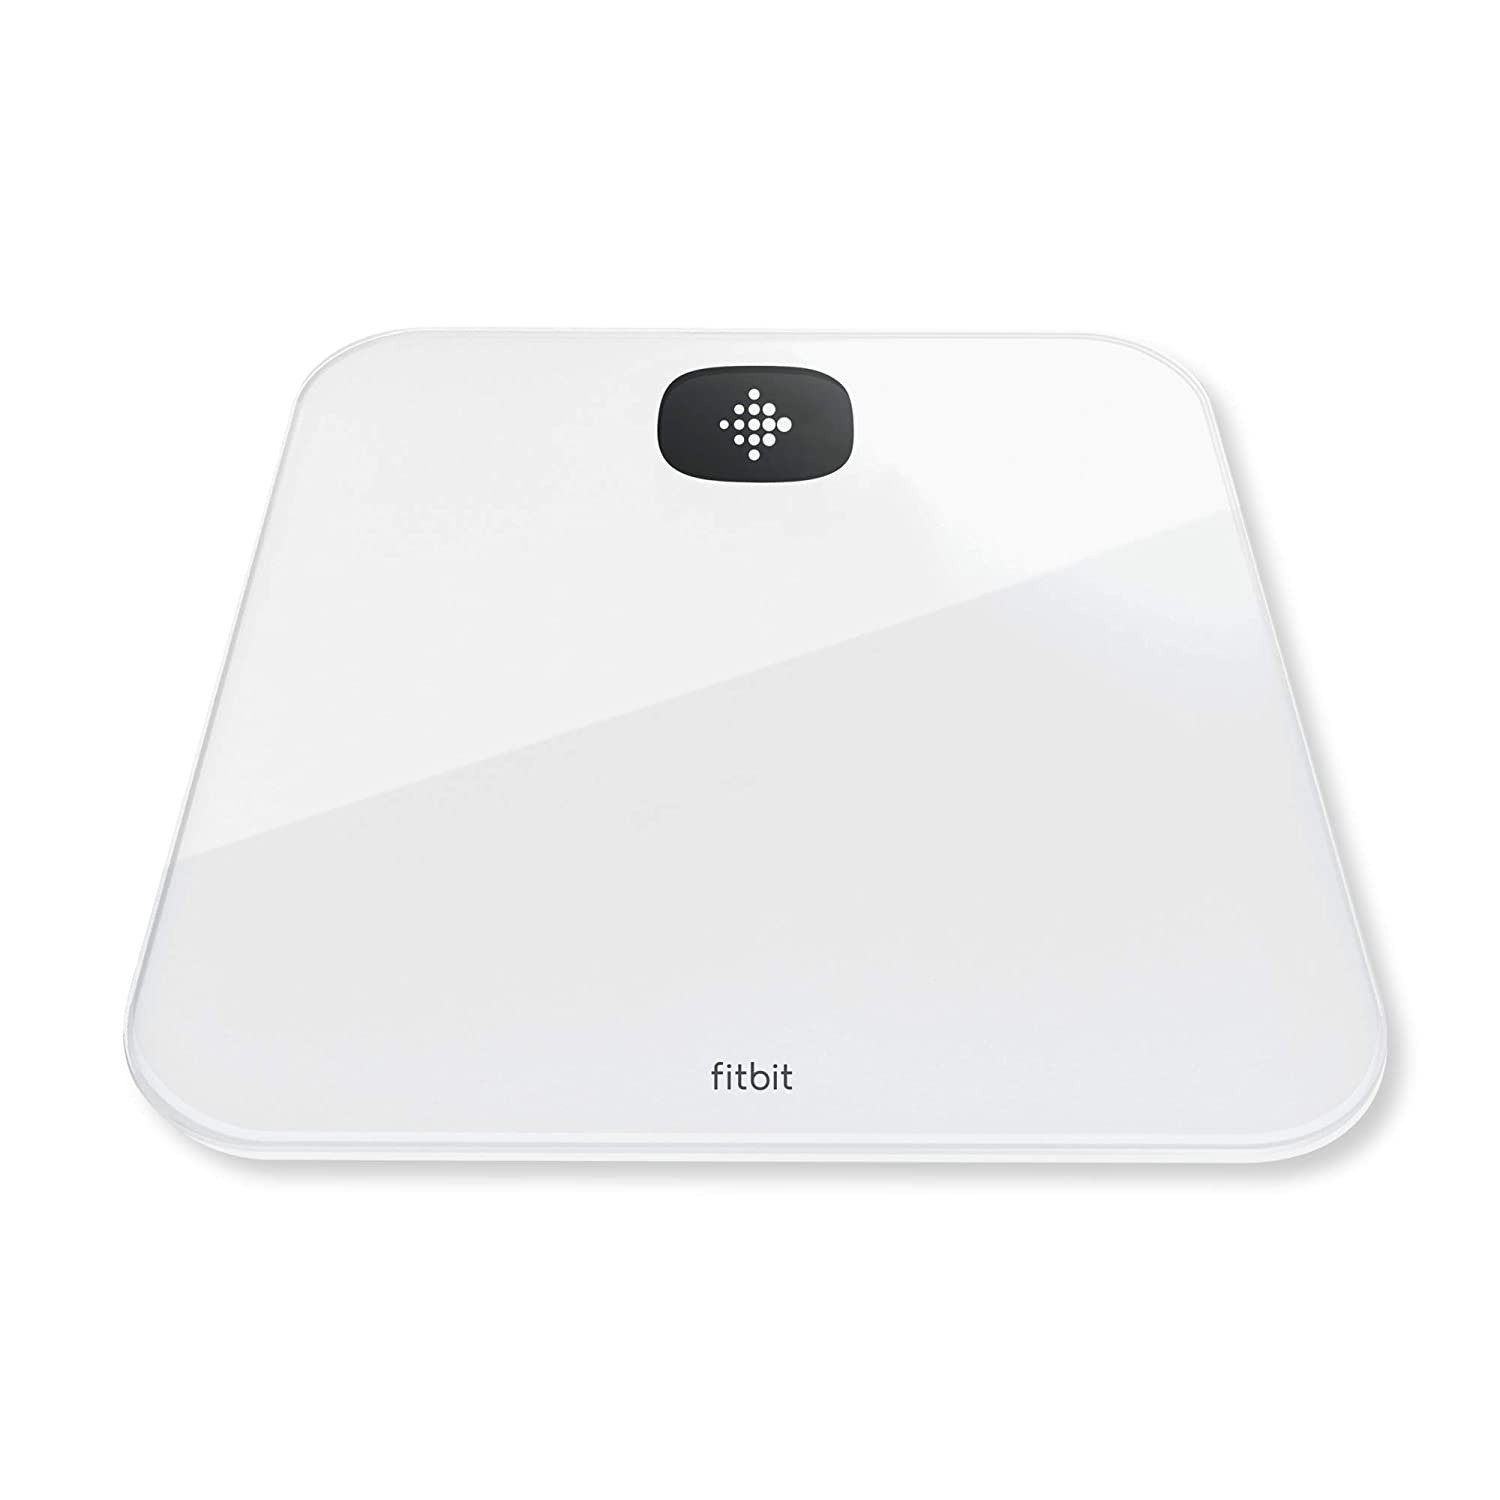 Fitbit Aria Air Scales White, Unisex-Adult, One Size: Fitbit ...